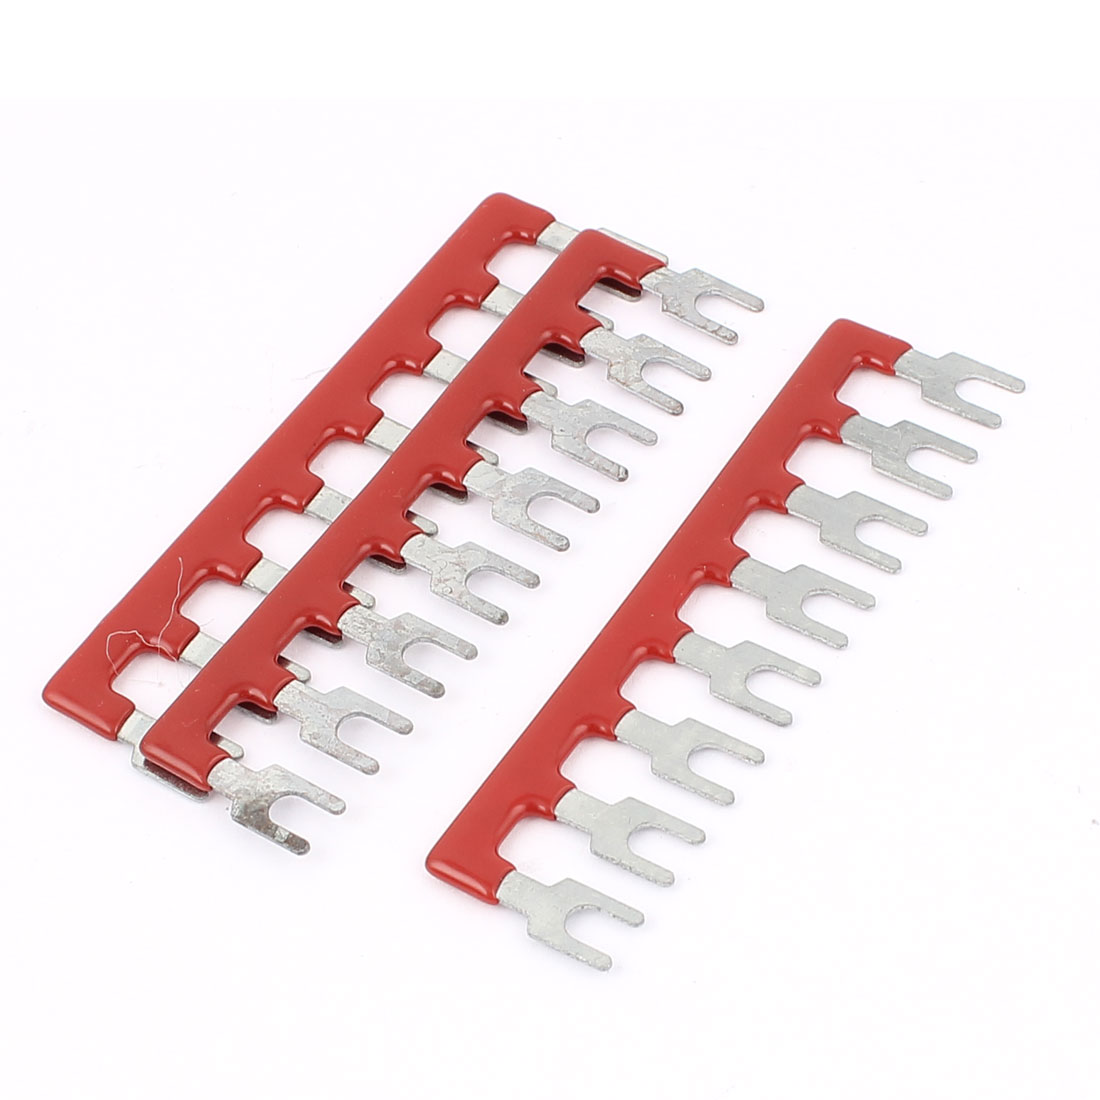 3 Pcs Fork Type 8 Positions Pre Insulated Terminal Strip Block Red 600V 25A